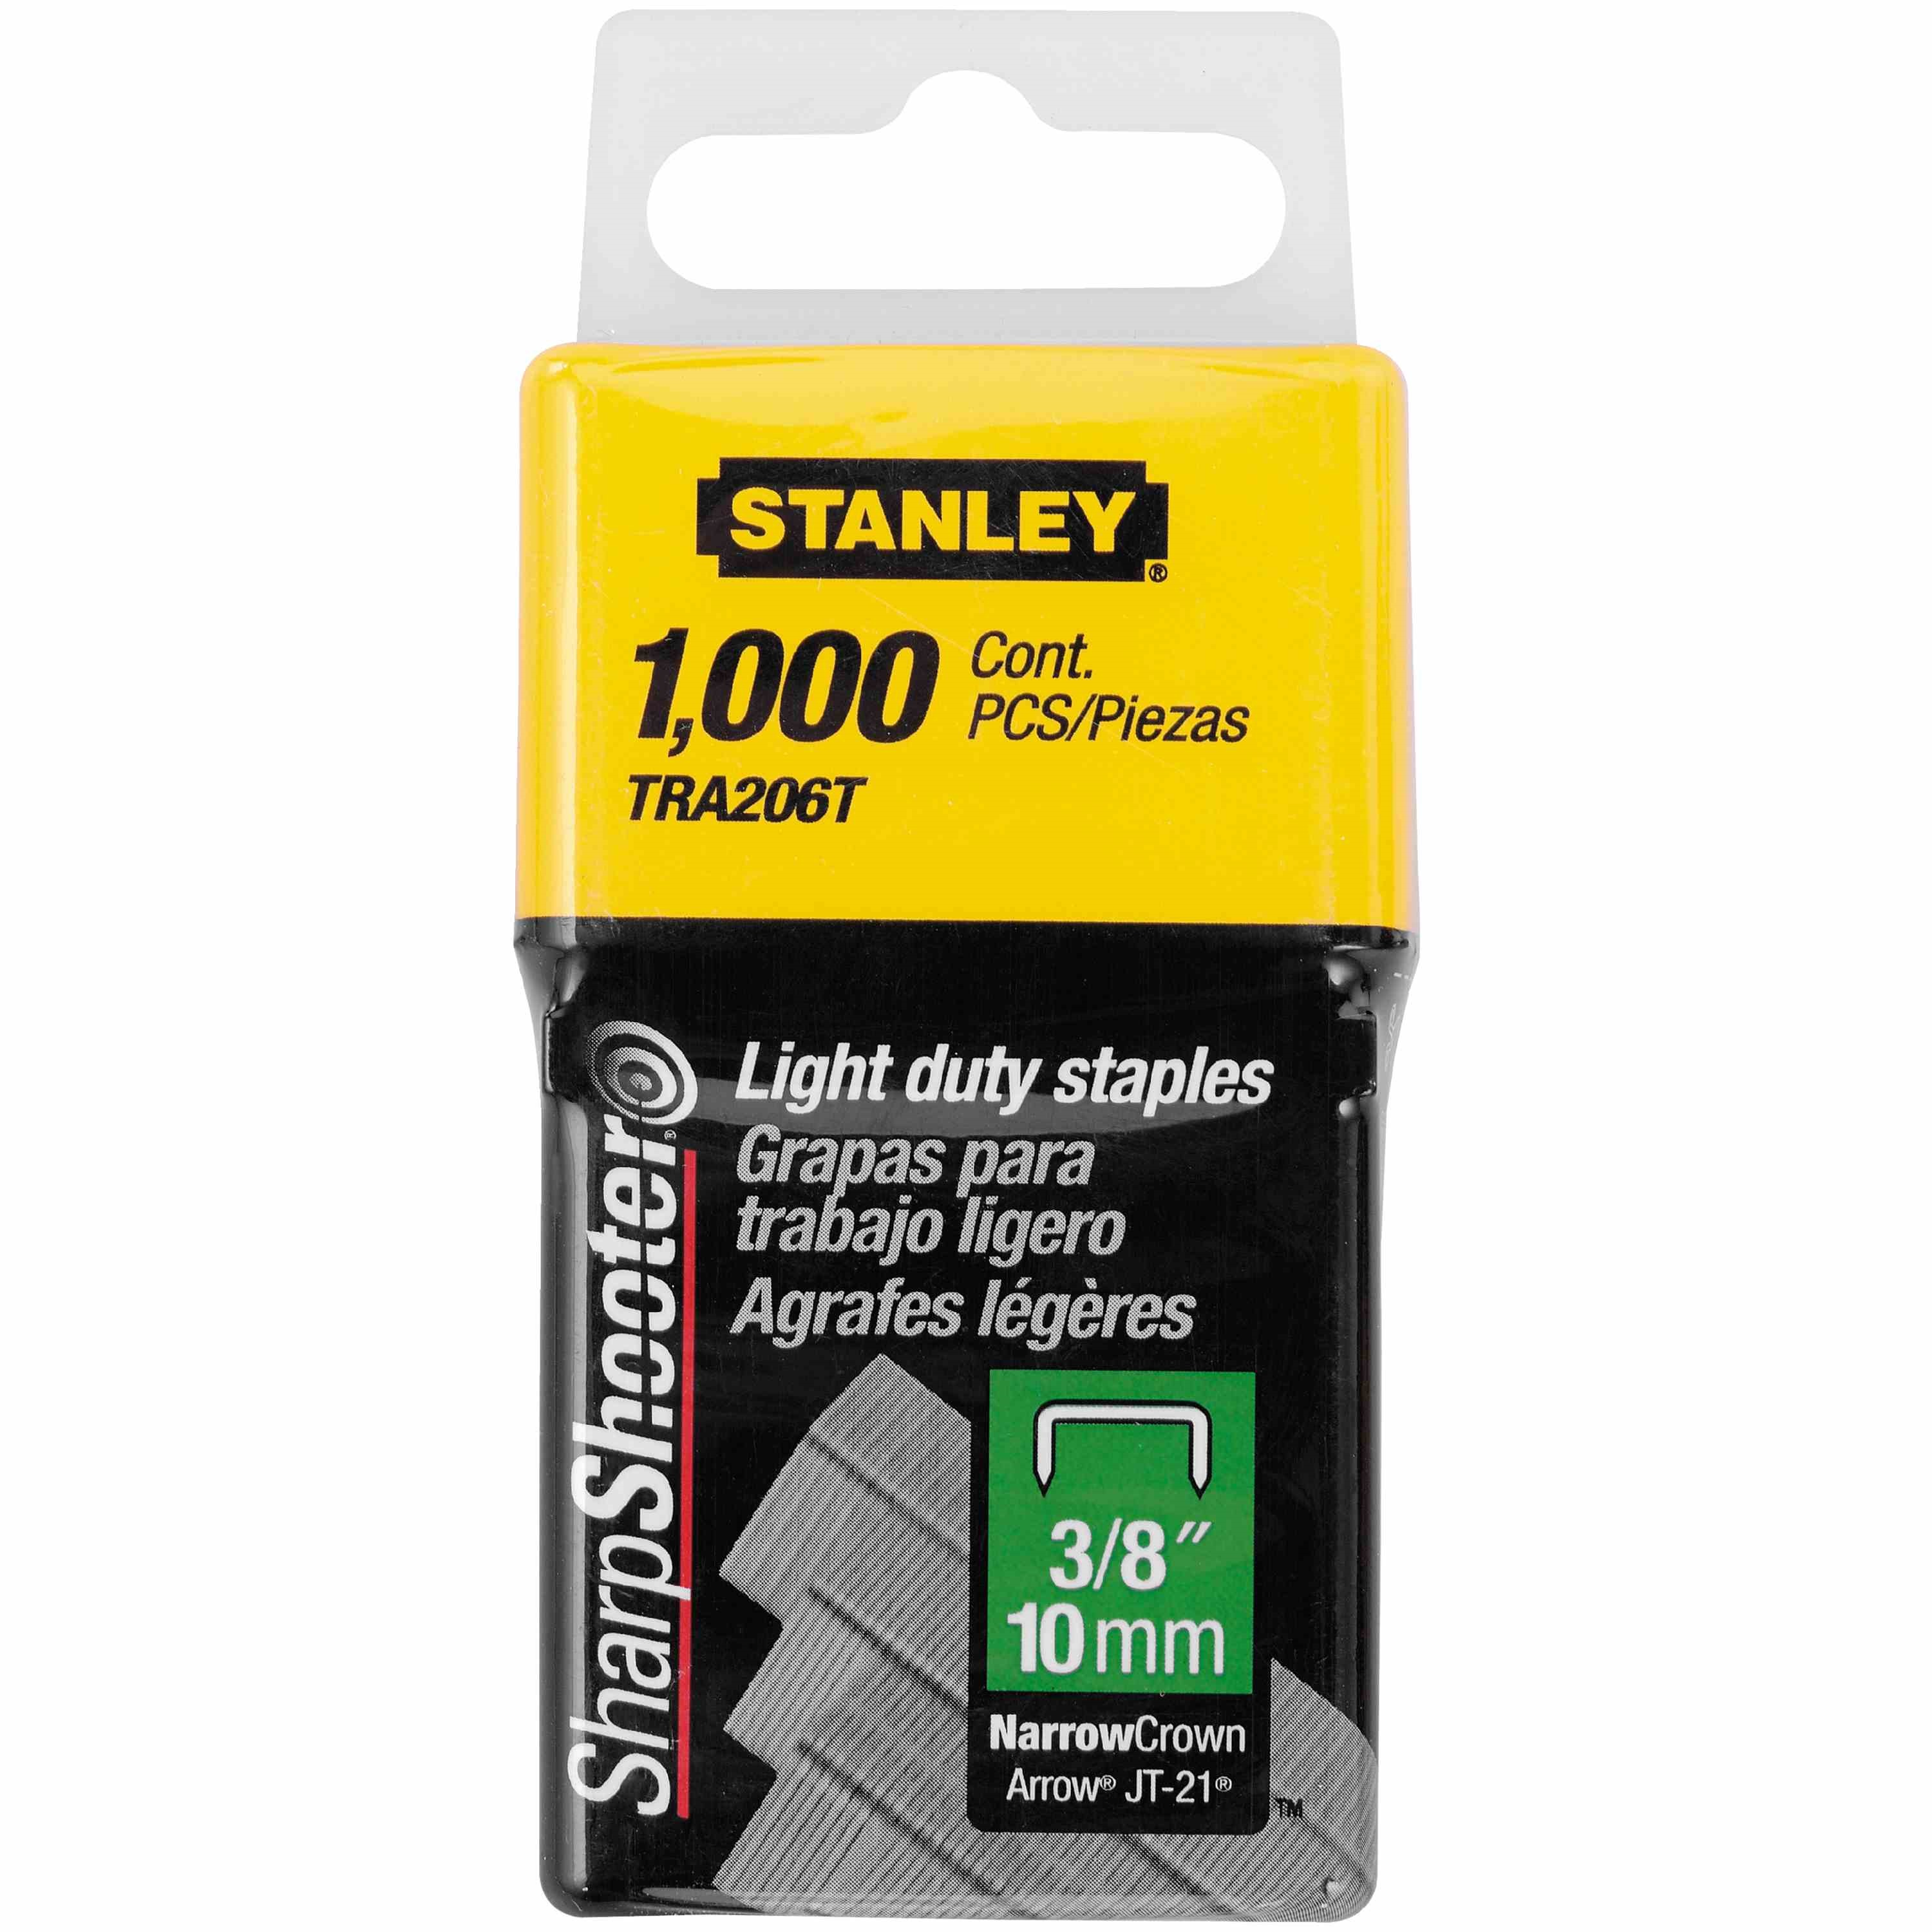 Stanley Tools - 1000 pc 38 in Light Duty Staples - TRA206T